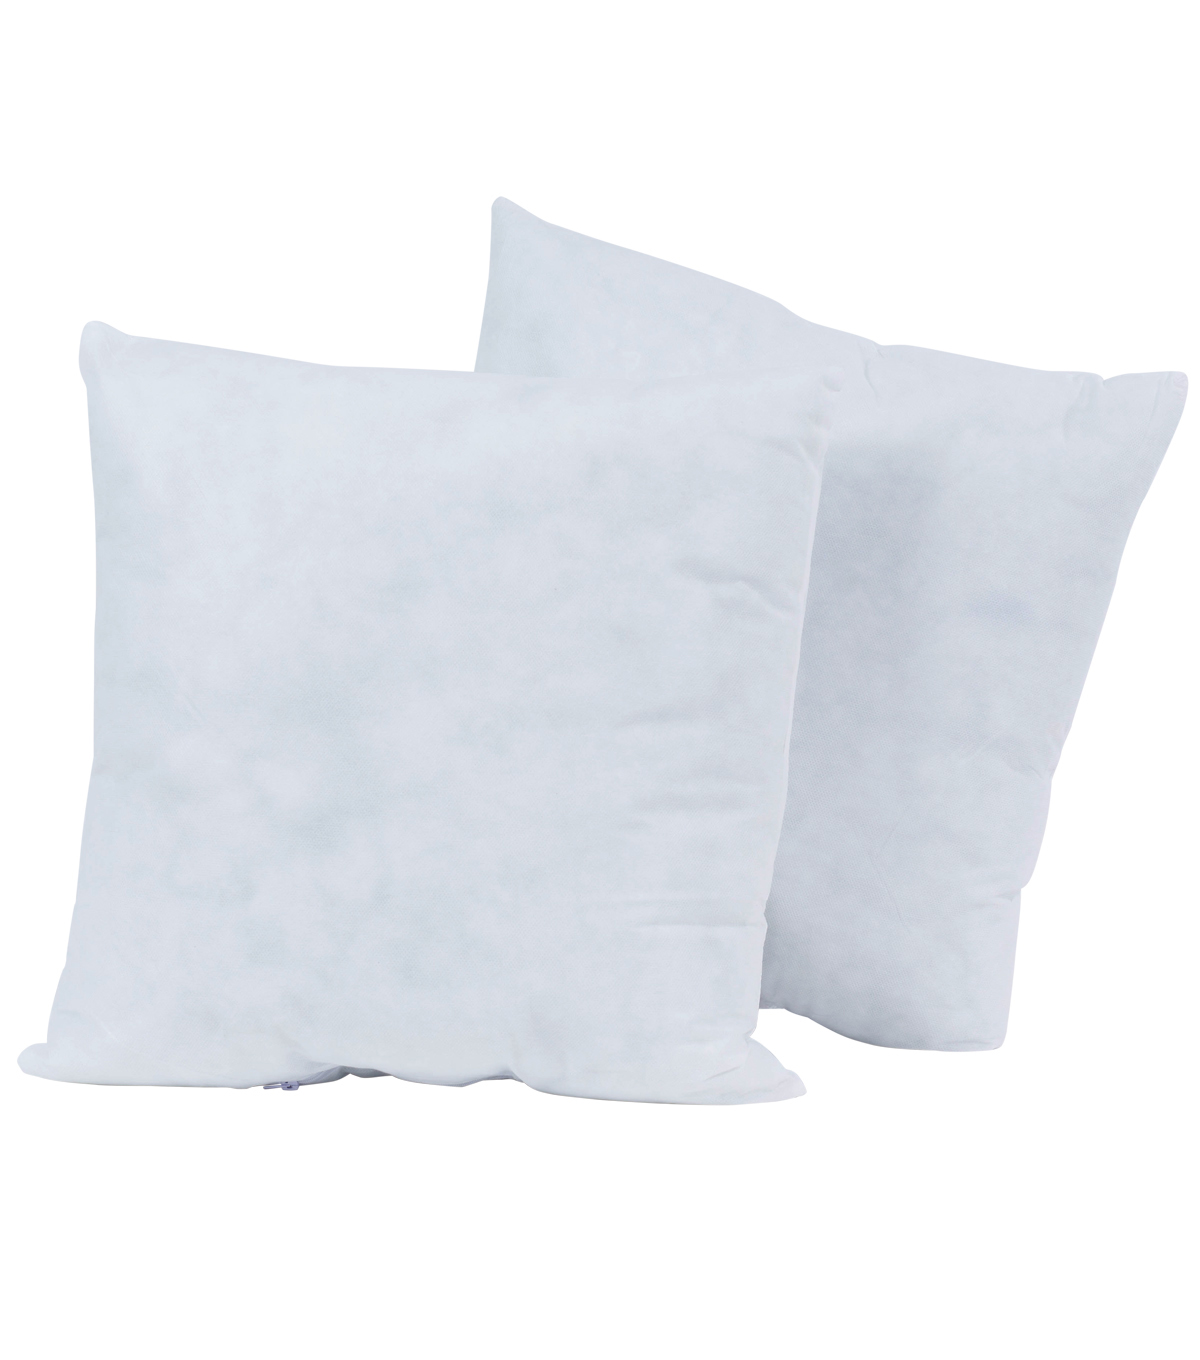 Affordable Basic Pillow Inserts Fairfield Basic Pillow X Pack Joann 18x18 Pillow Insert Bulk 18x18 Pillow Insert Michaels decor 18x18 Pillow Insert